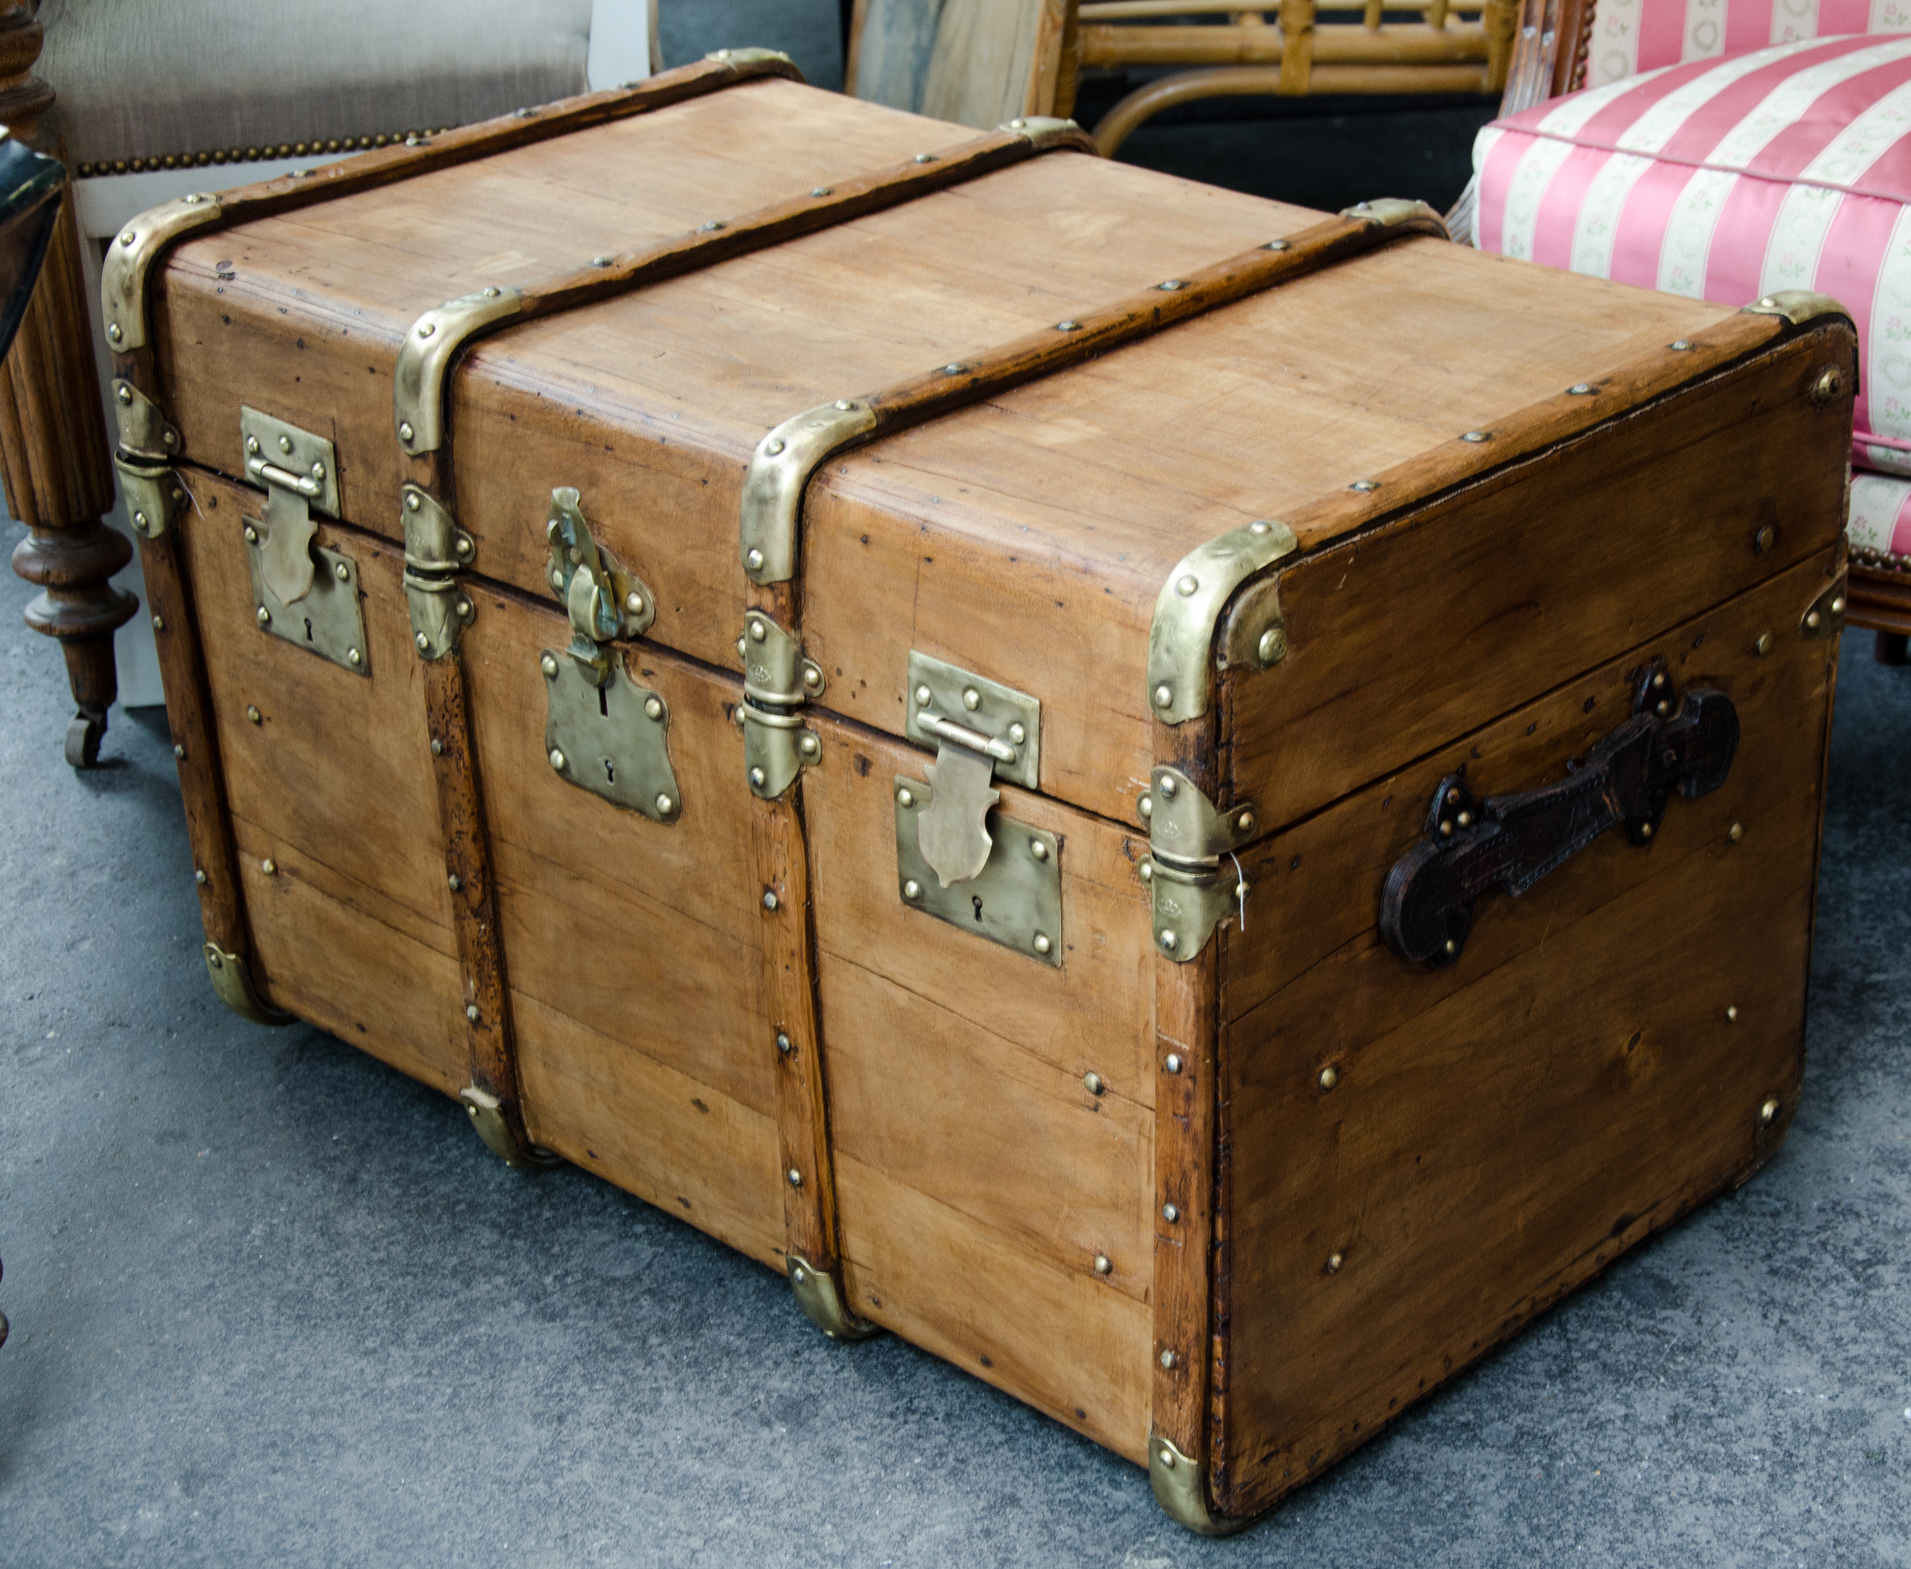 One big and large old wood case